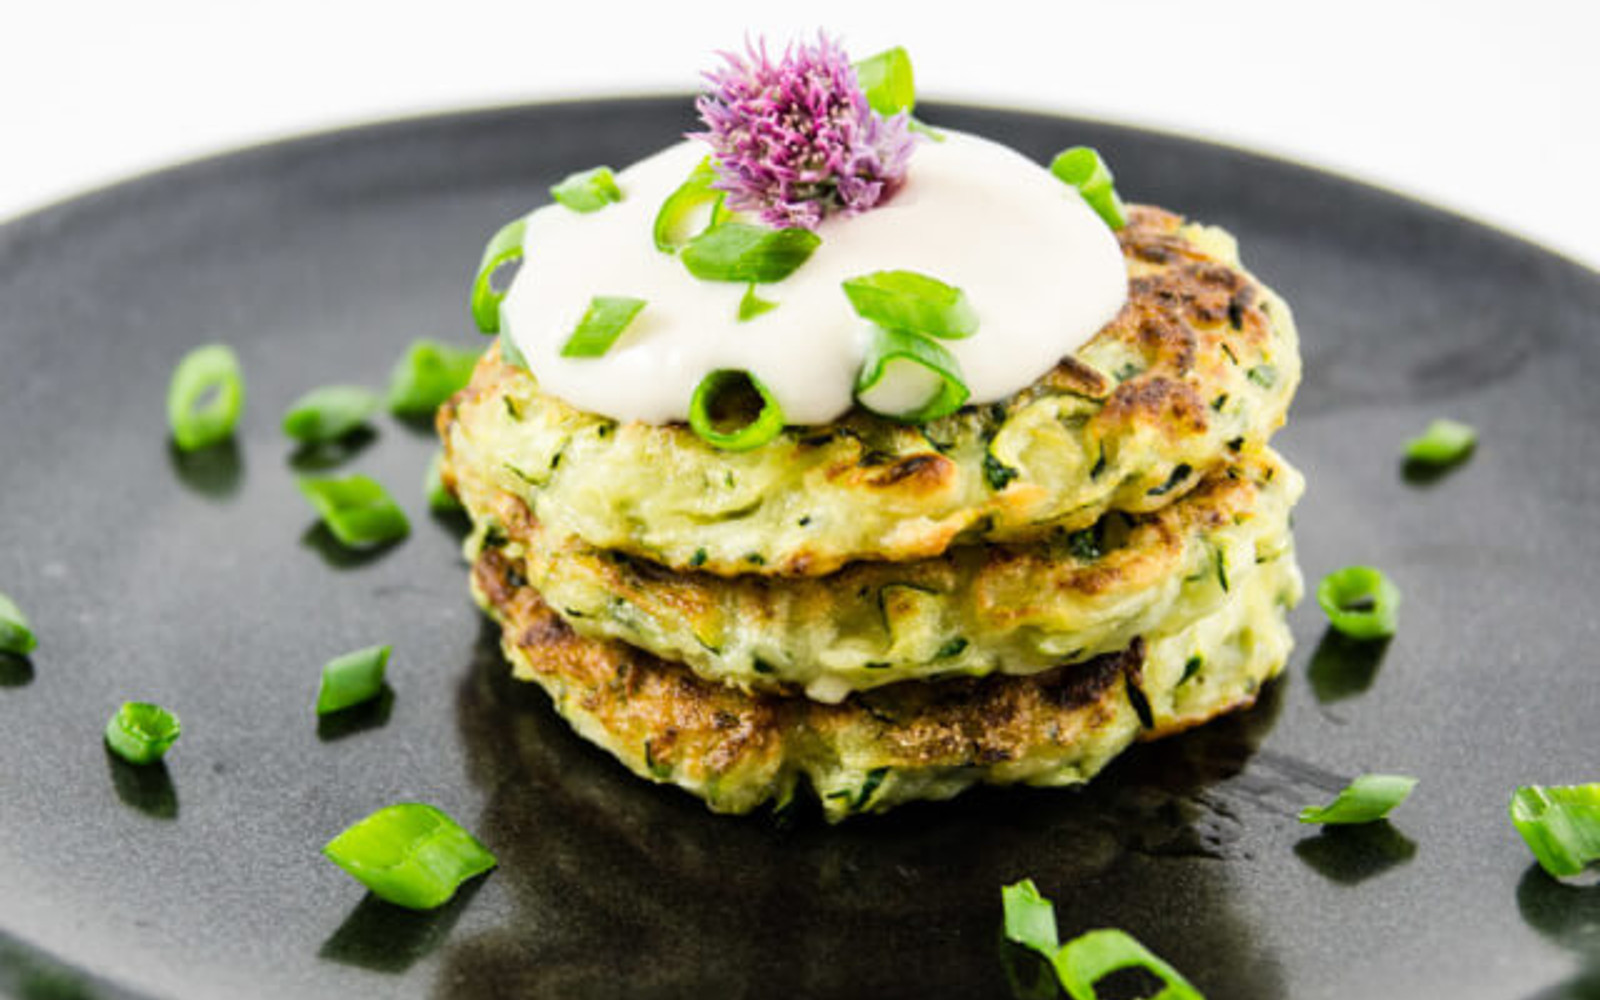 Tasty zucchini fritters - quick and easy cooking recipes 84